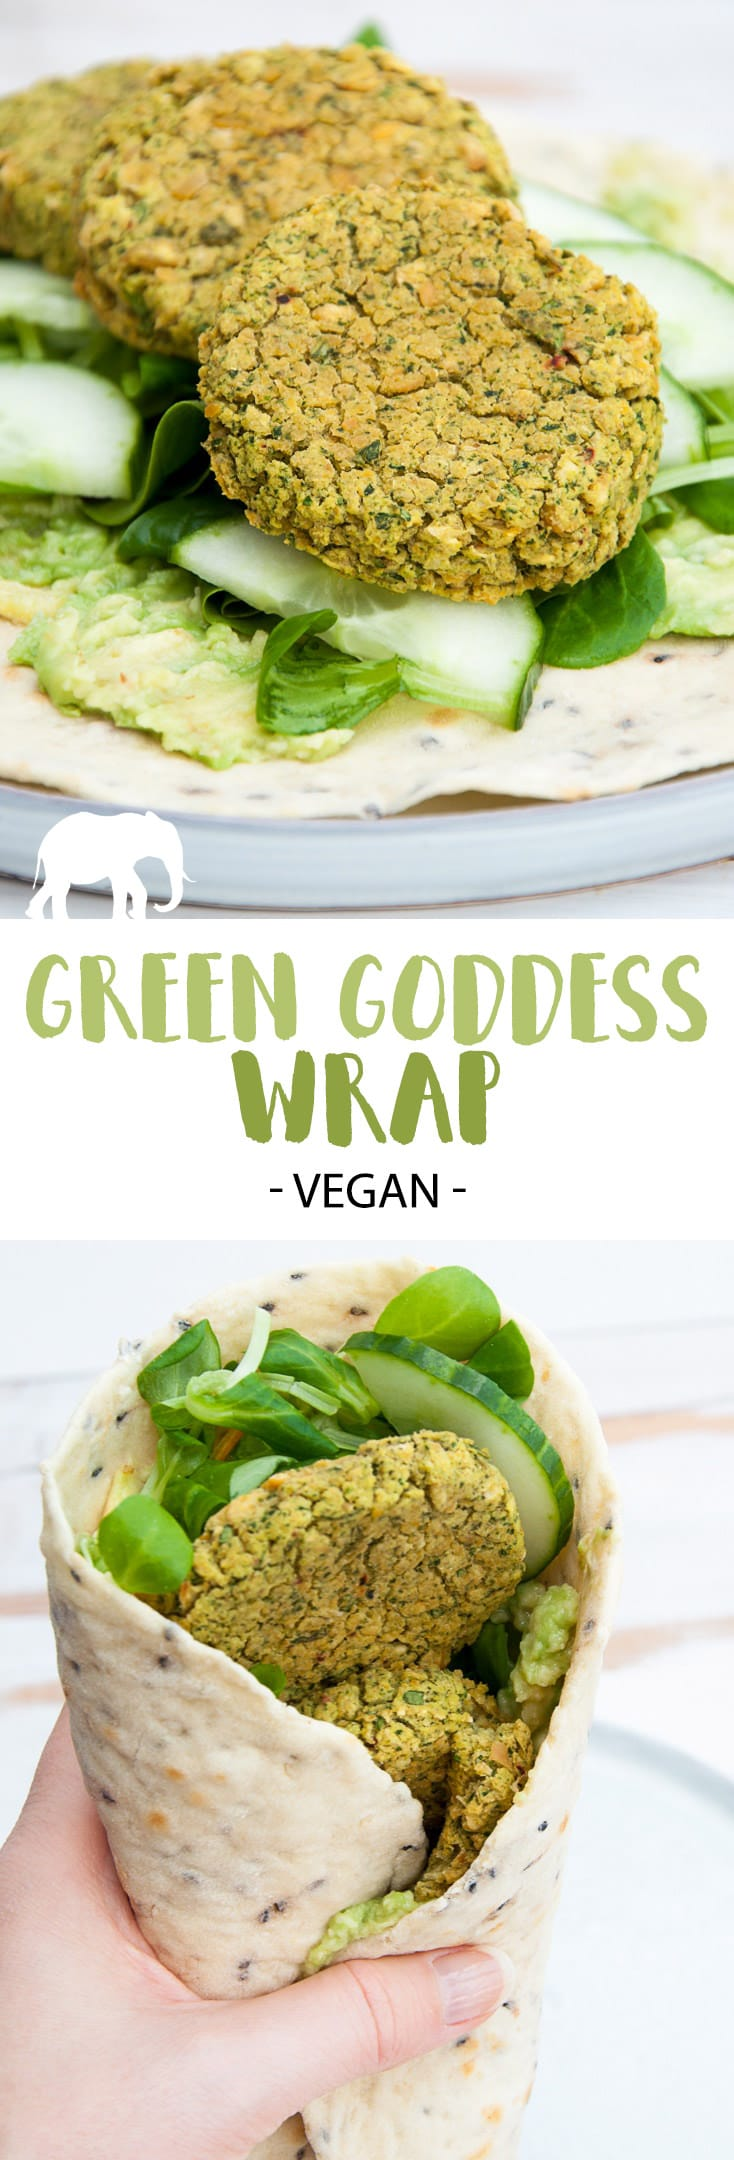 Green Goddess Wrap with homemade flatbread, spinach falafel, cucumber, salad and mashed avocado | ElephantasticVegan.com #wrap #falafel #vegan